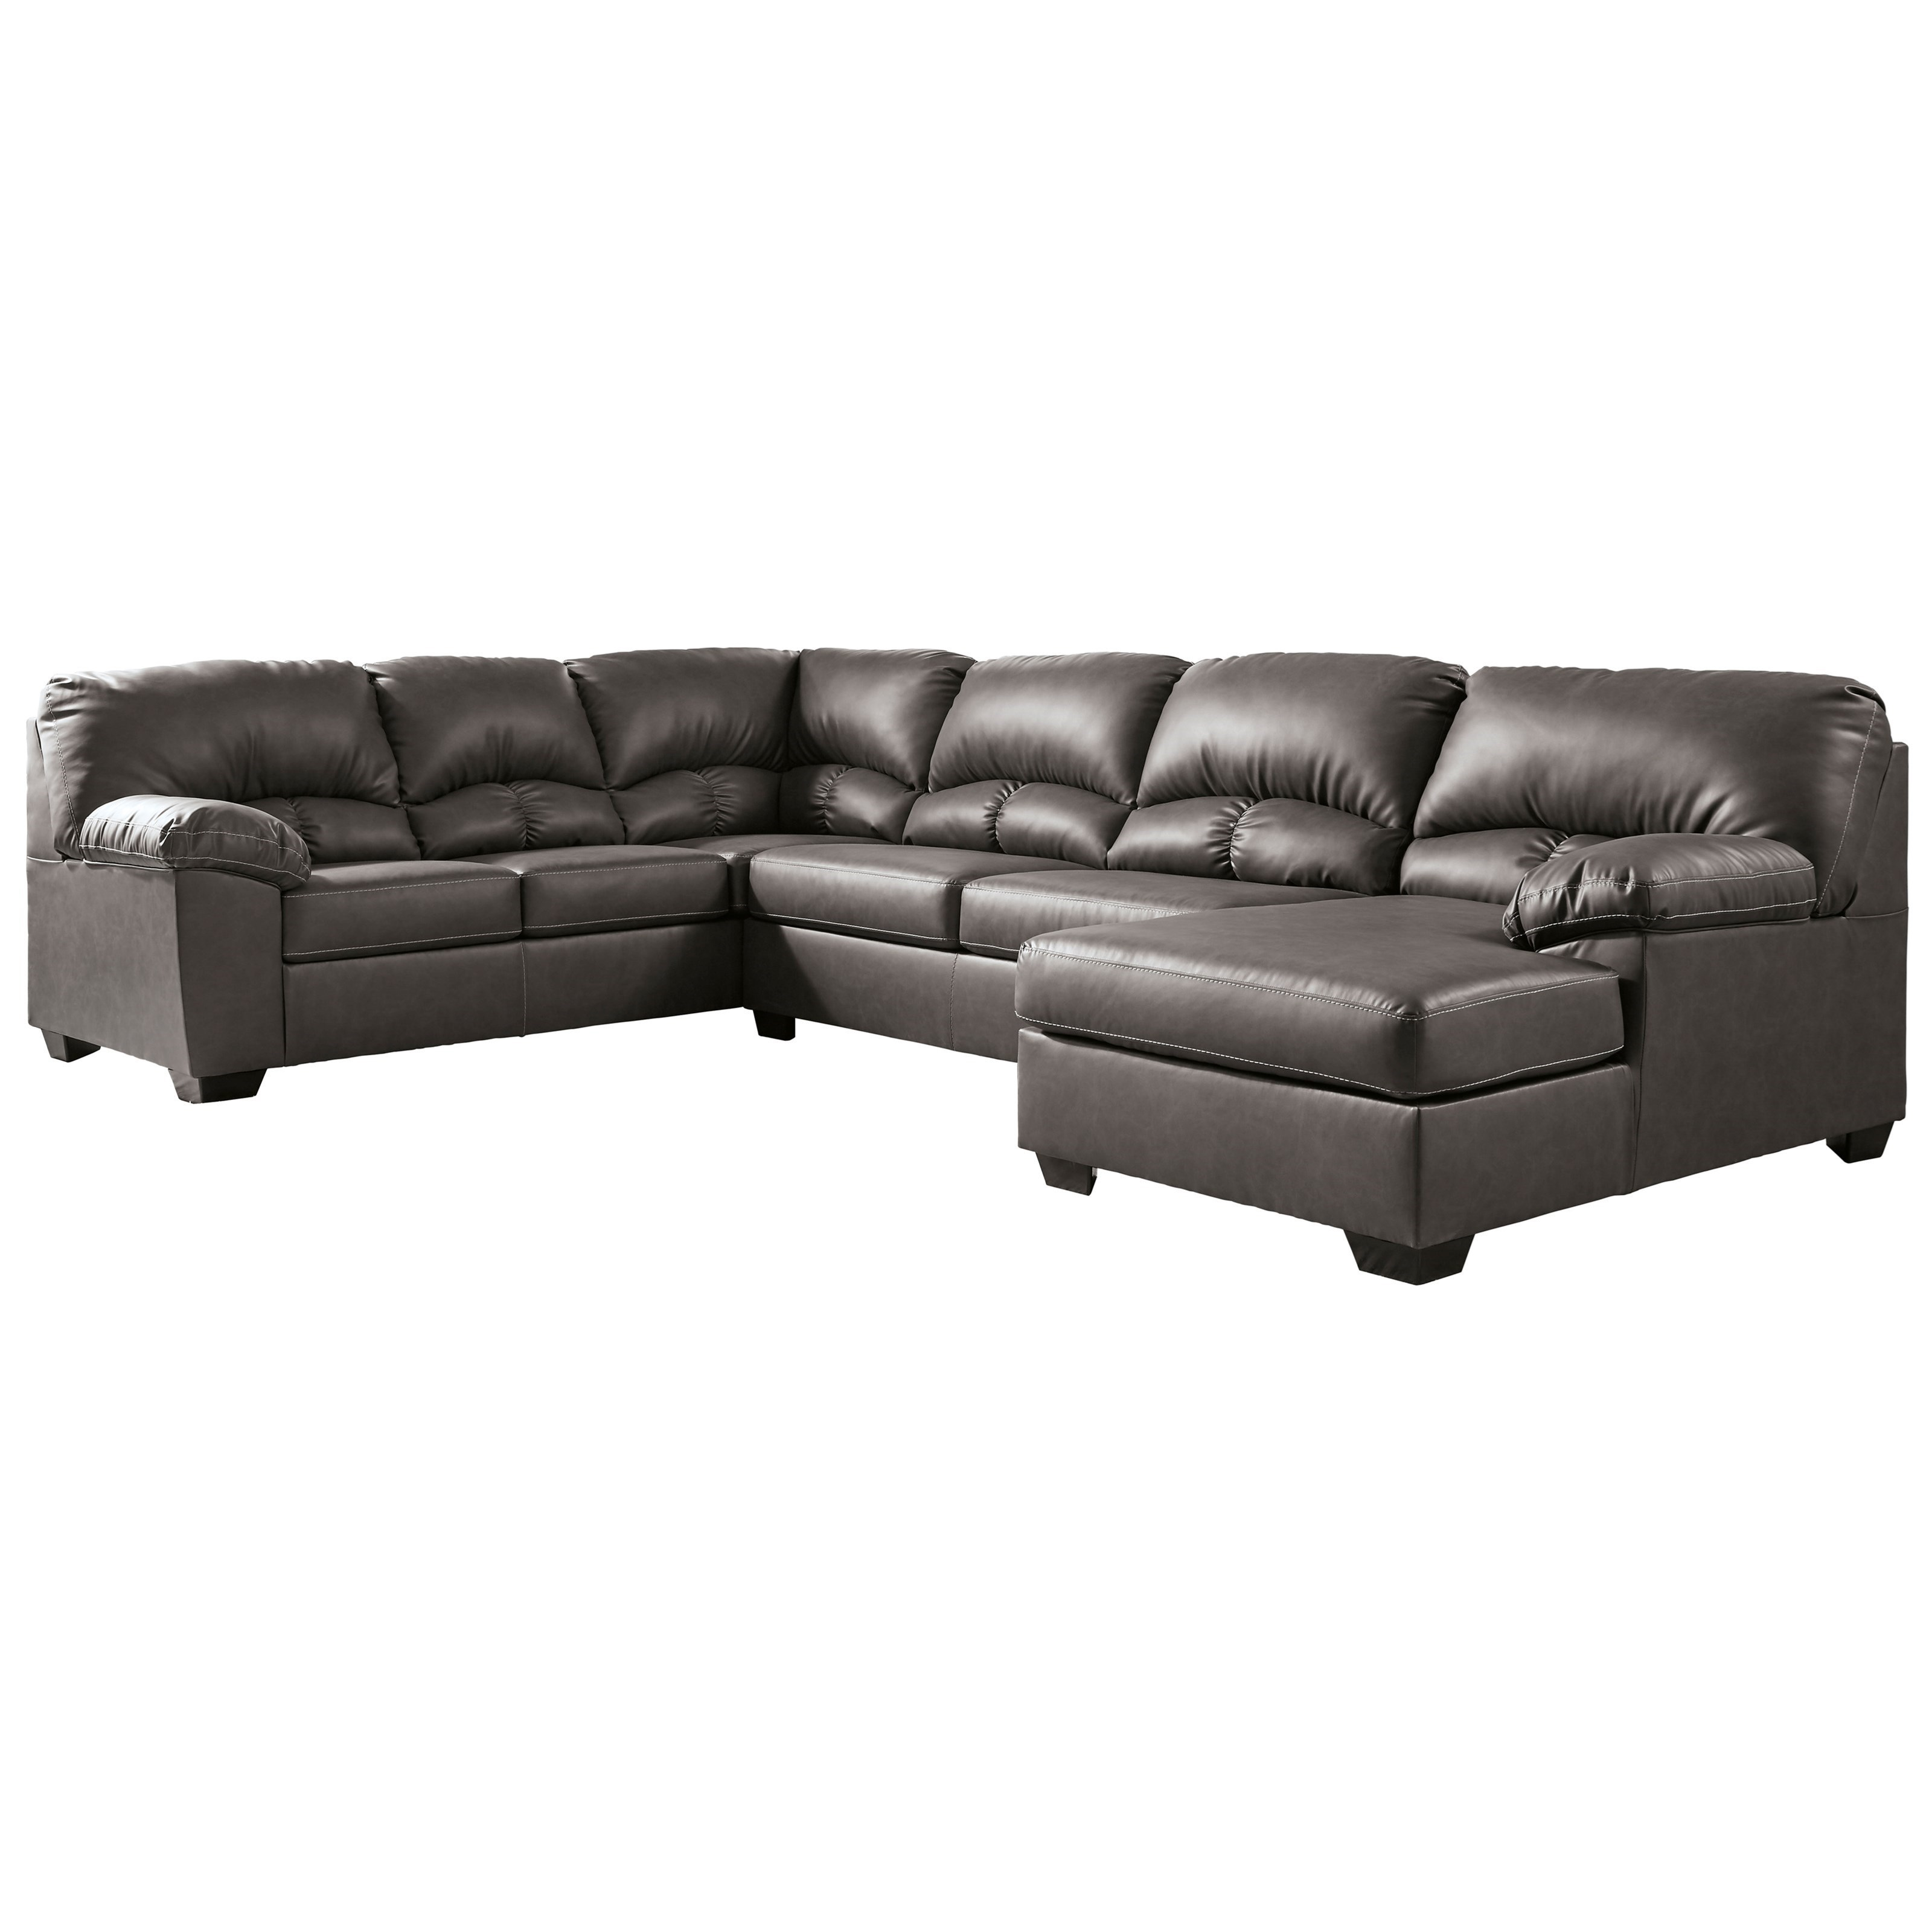 Aberton 3-Piece Sectional with Chaise by Benchcraft at Fashion Furniture